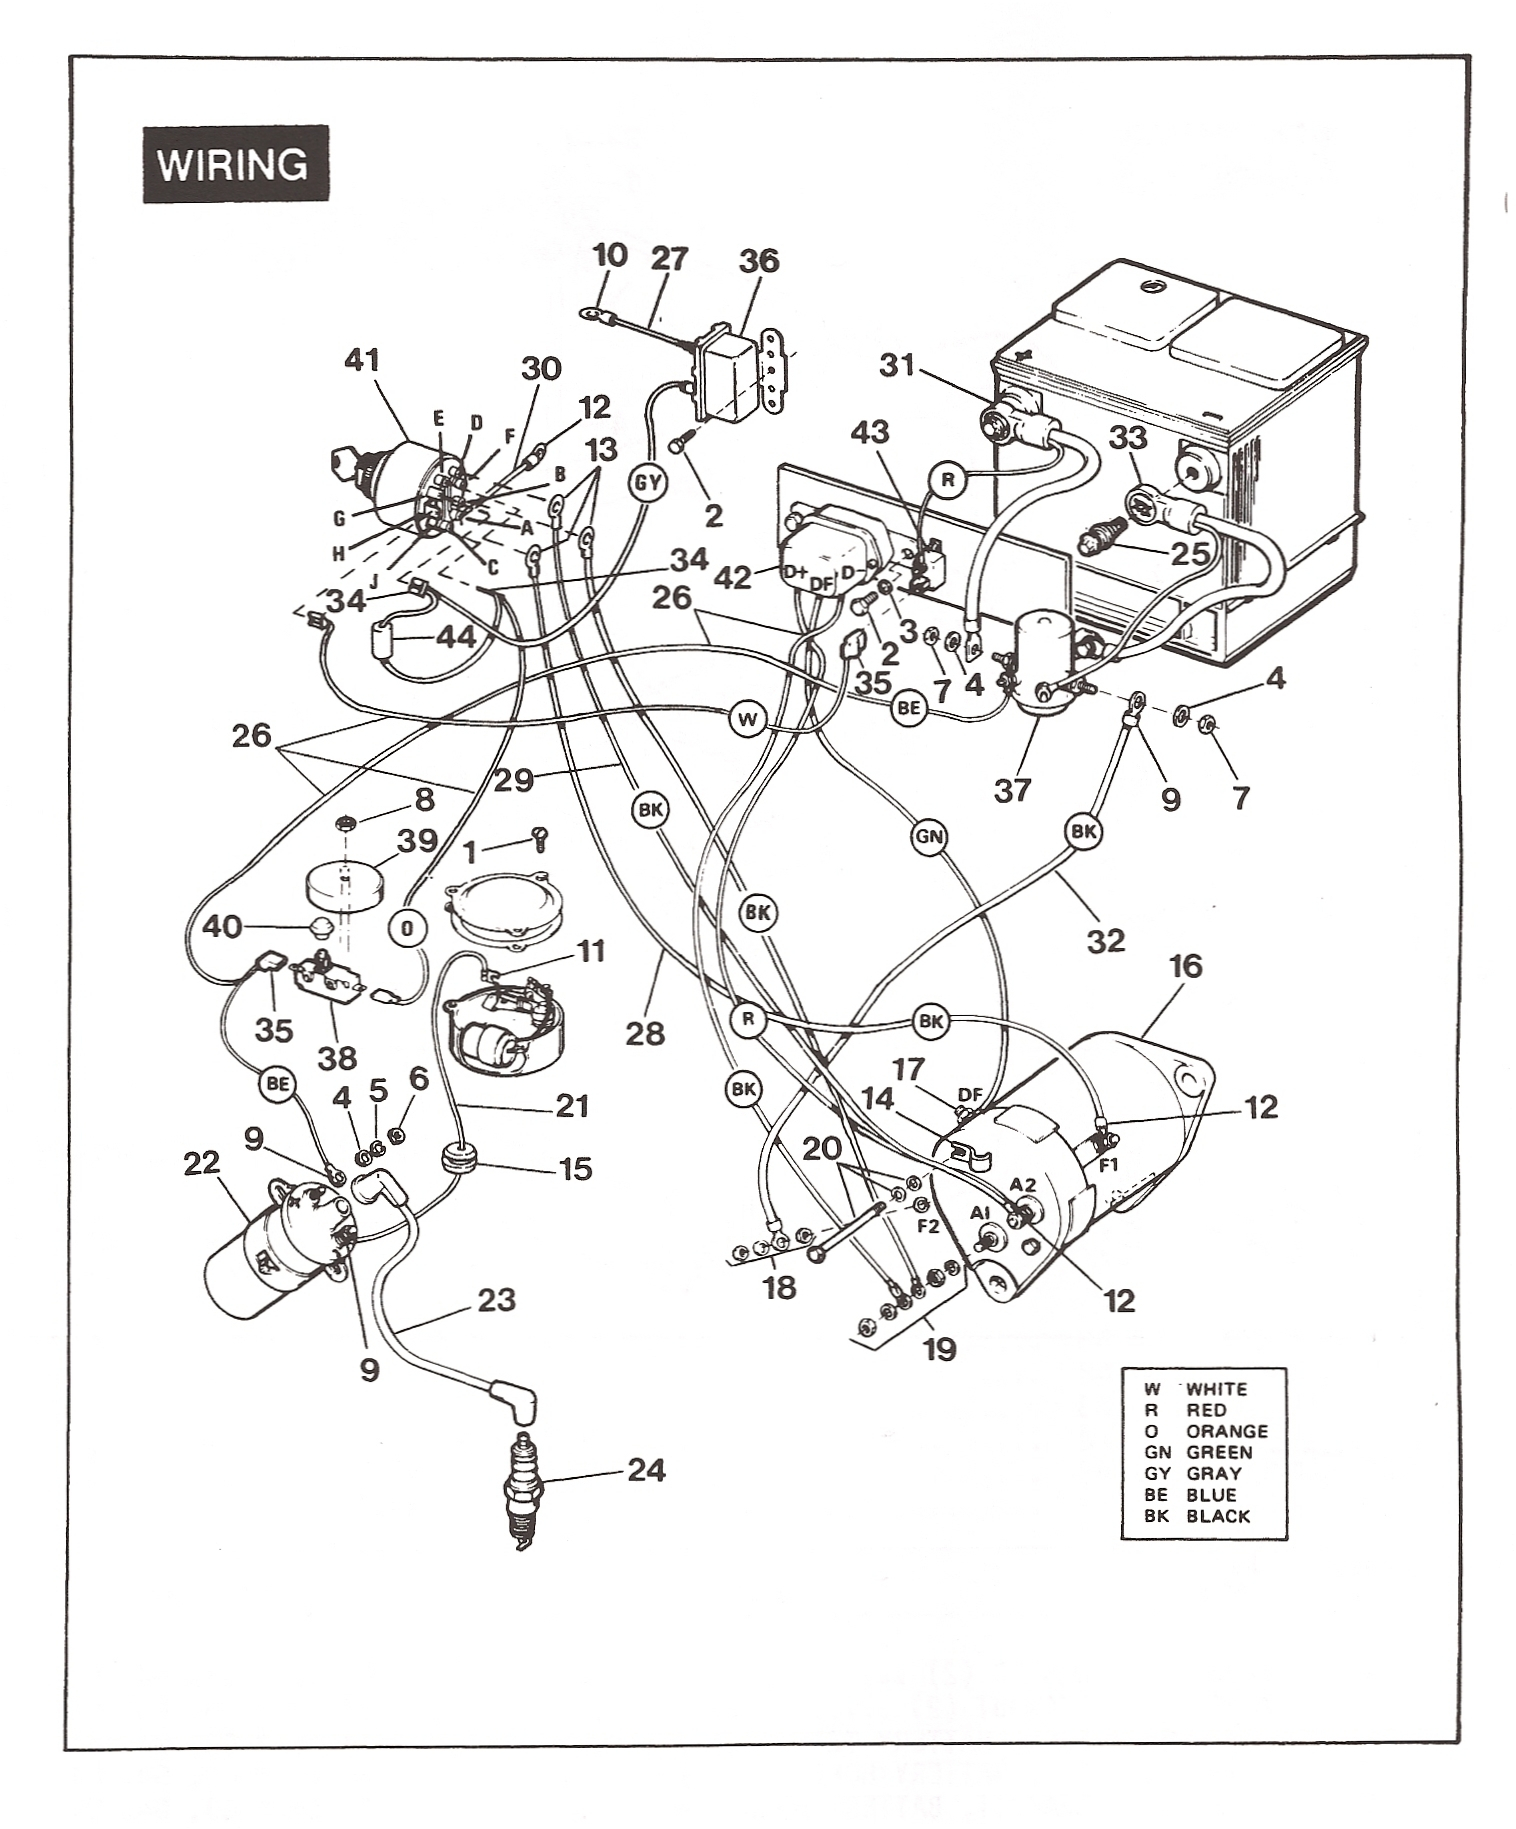 Ez Go Golf Cart Parts Diagram Wiring For Wall Socket Including Patent Us20100194539 Power Socket